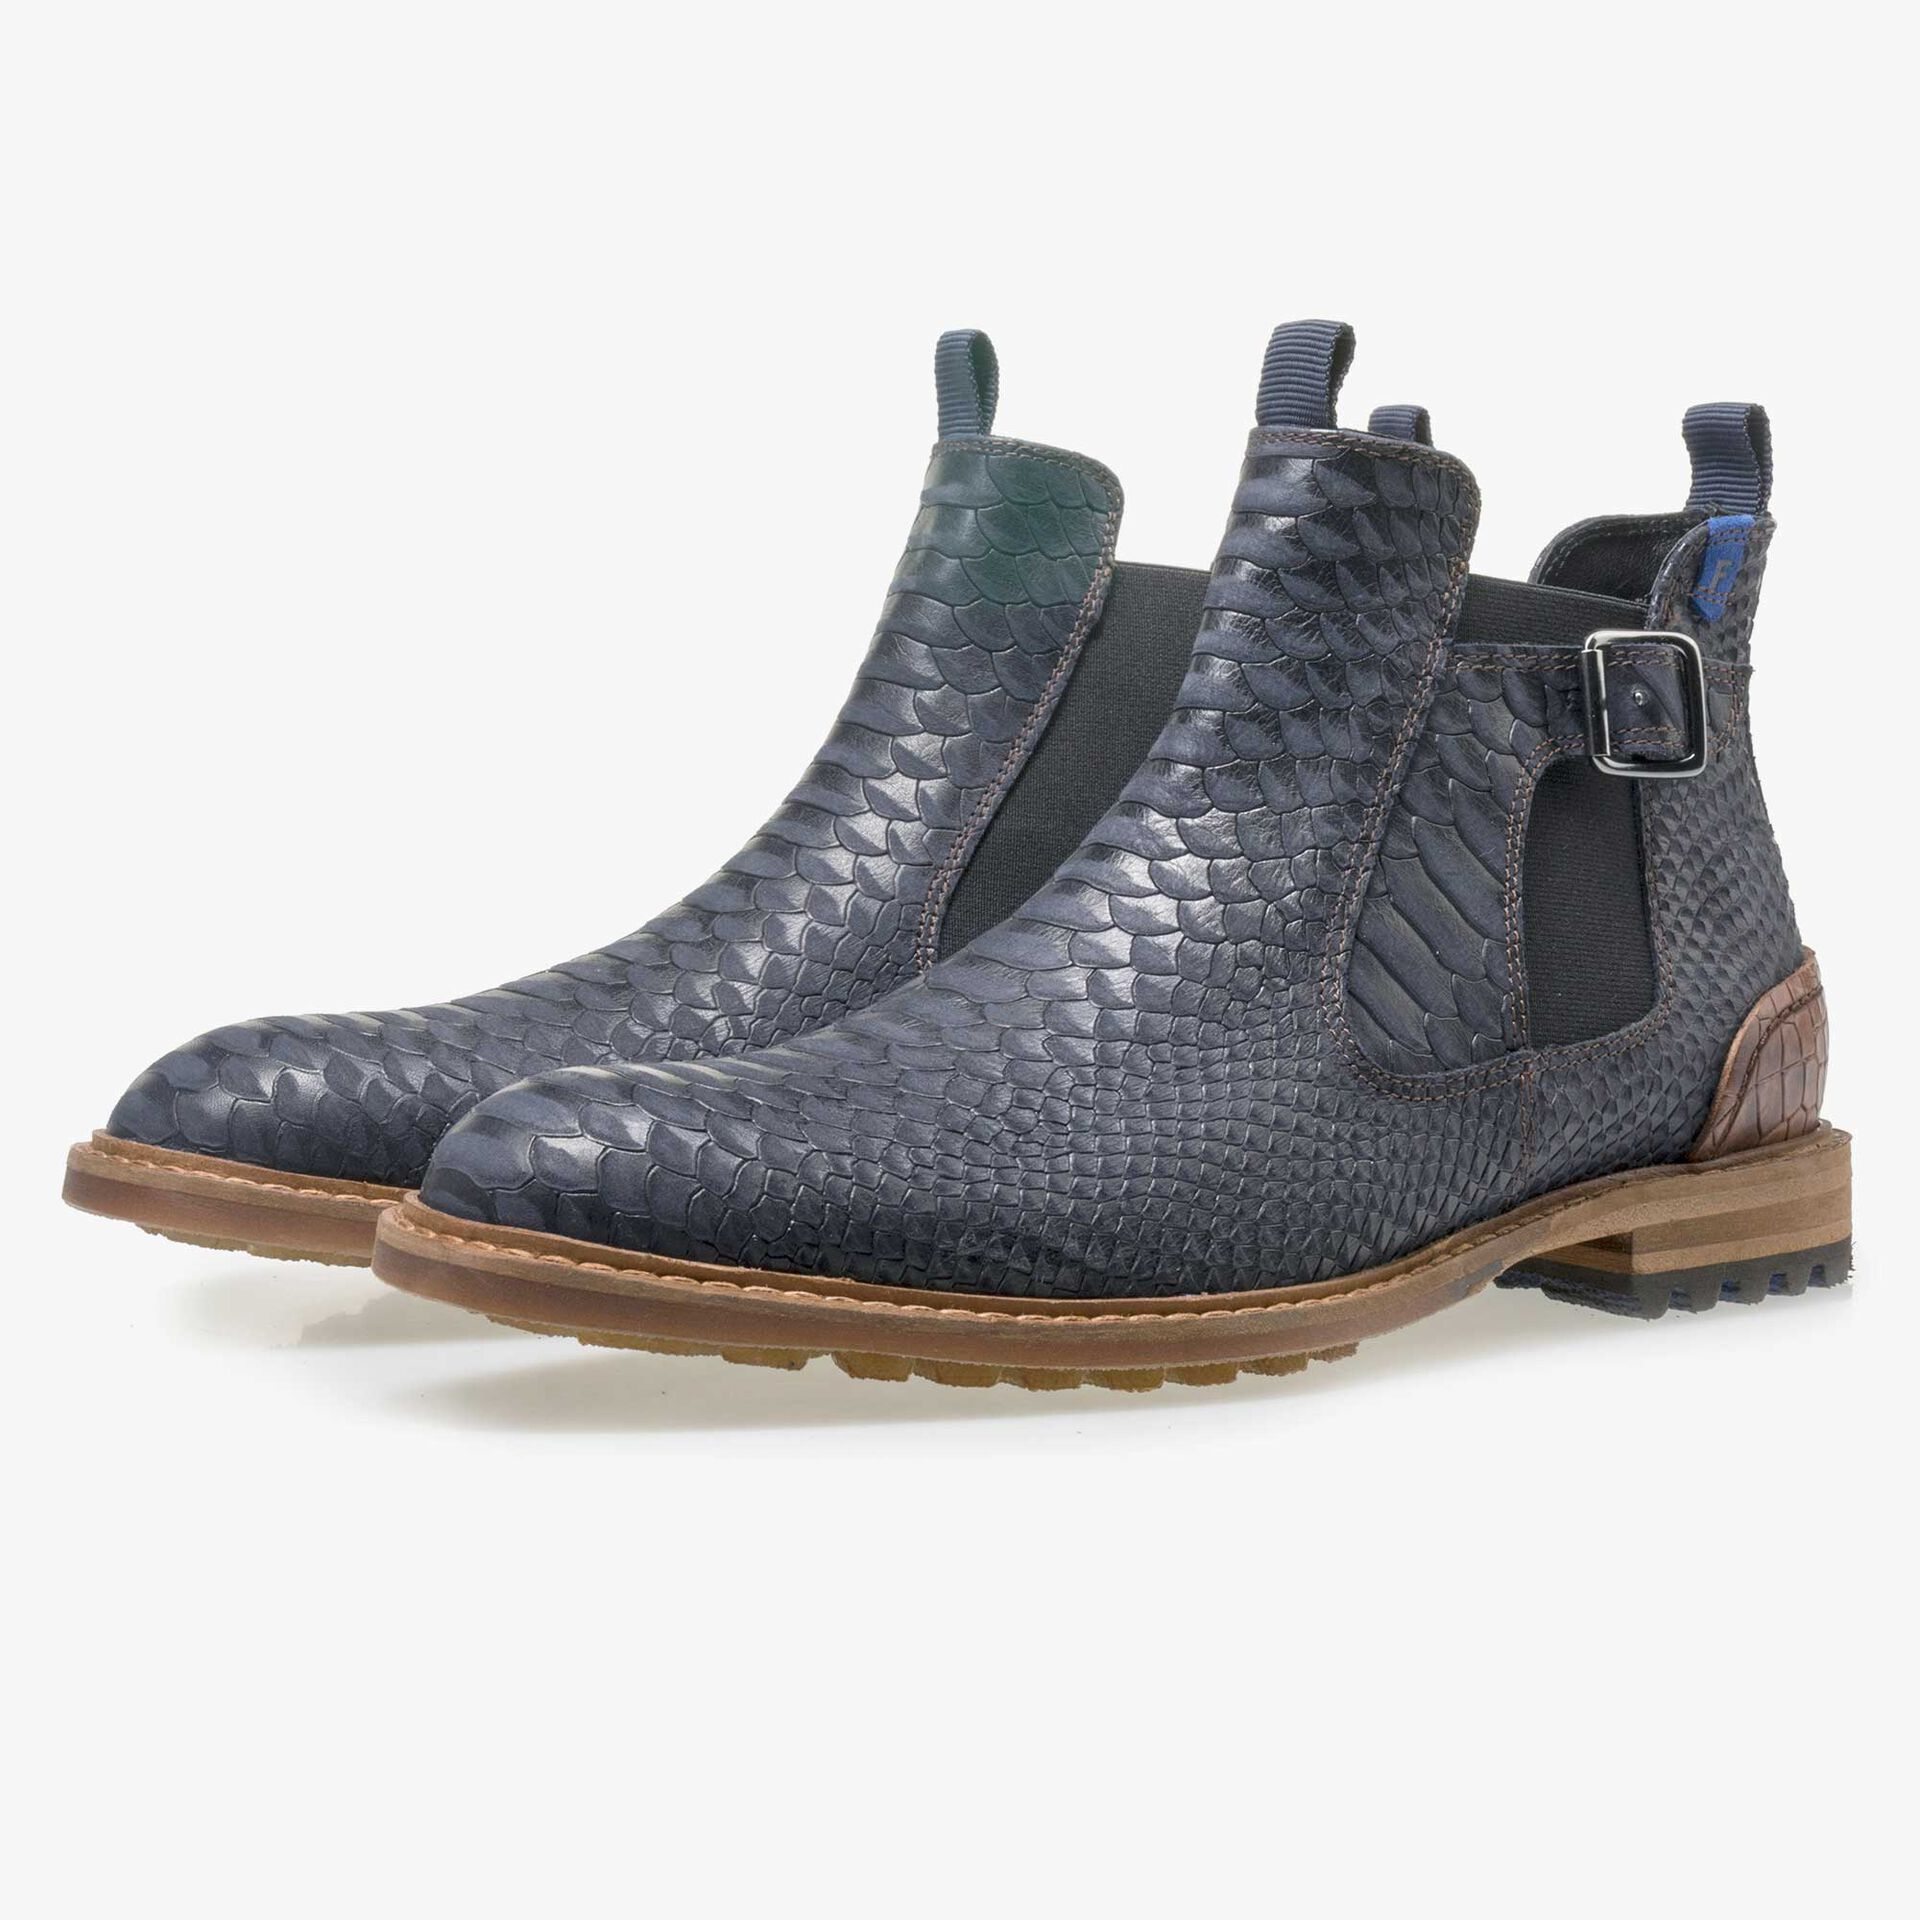 Floris van Bommel men's dark blue leather Chelsea boot